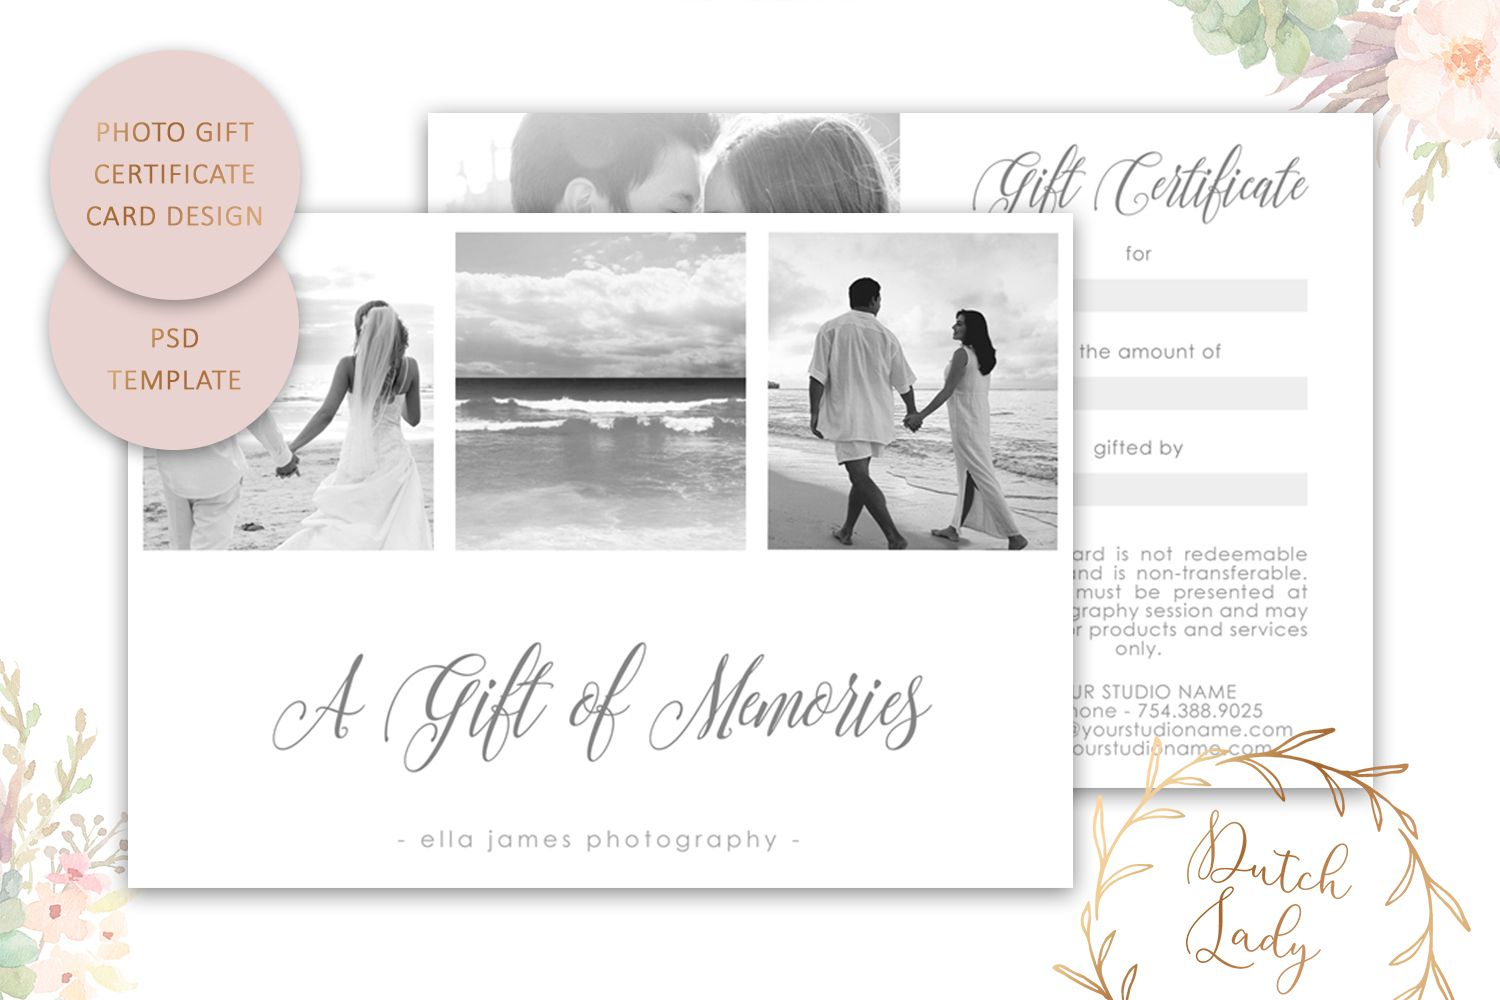 008 Remarkable Photography Session Gift Certificate Template Highest Quality  Photo Free PhotoshootFull